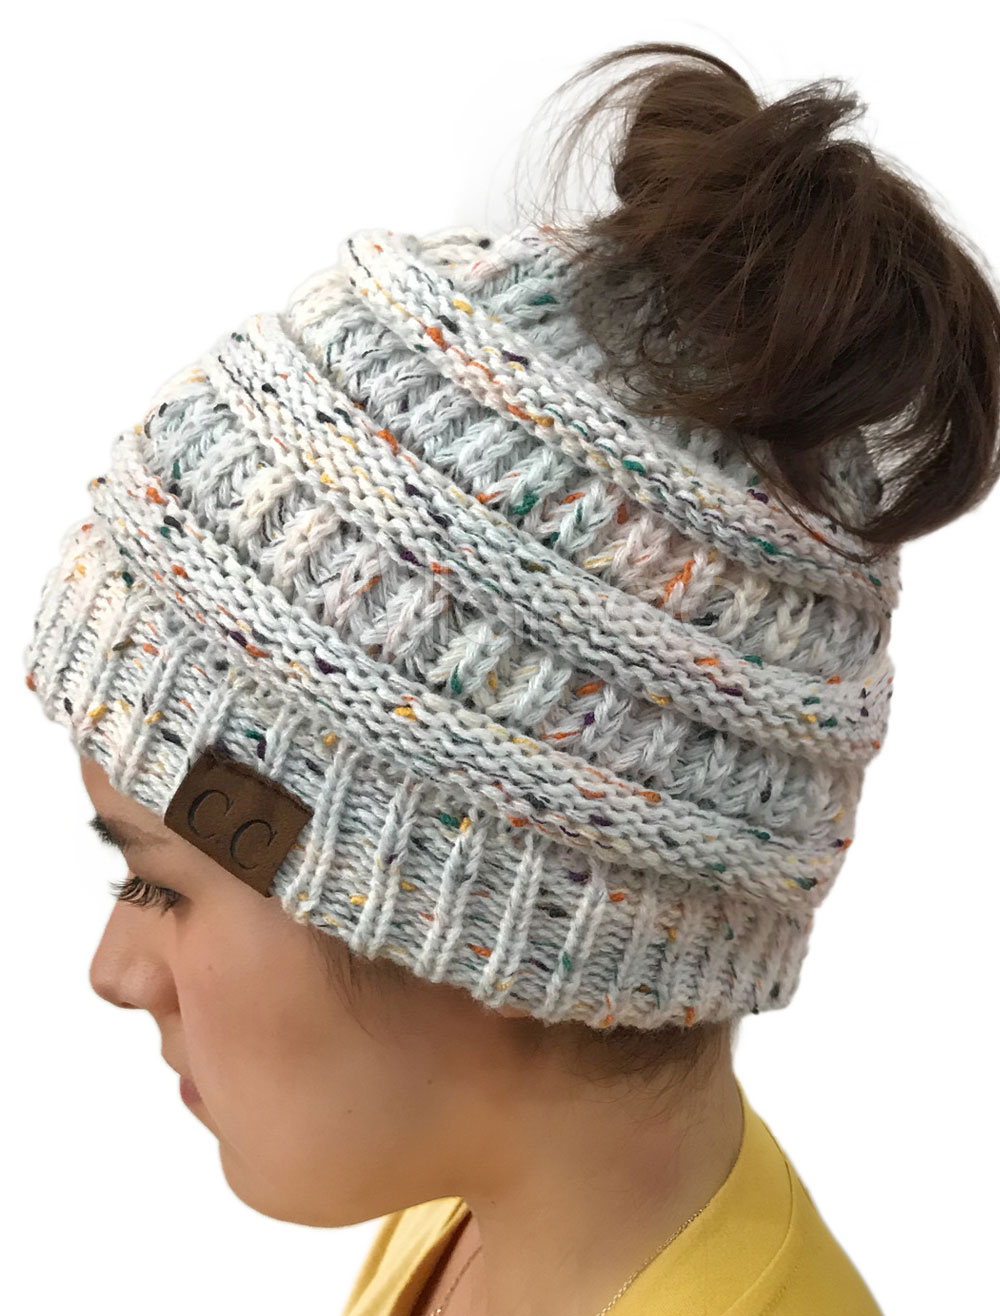 01e7830b258 Ponytail Beanie Hat Cable Knit High Bun Cap For Warm Winter With ...